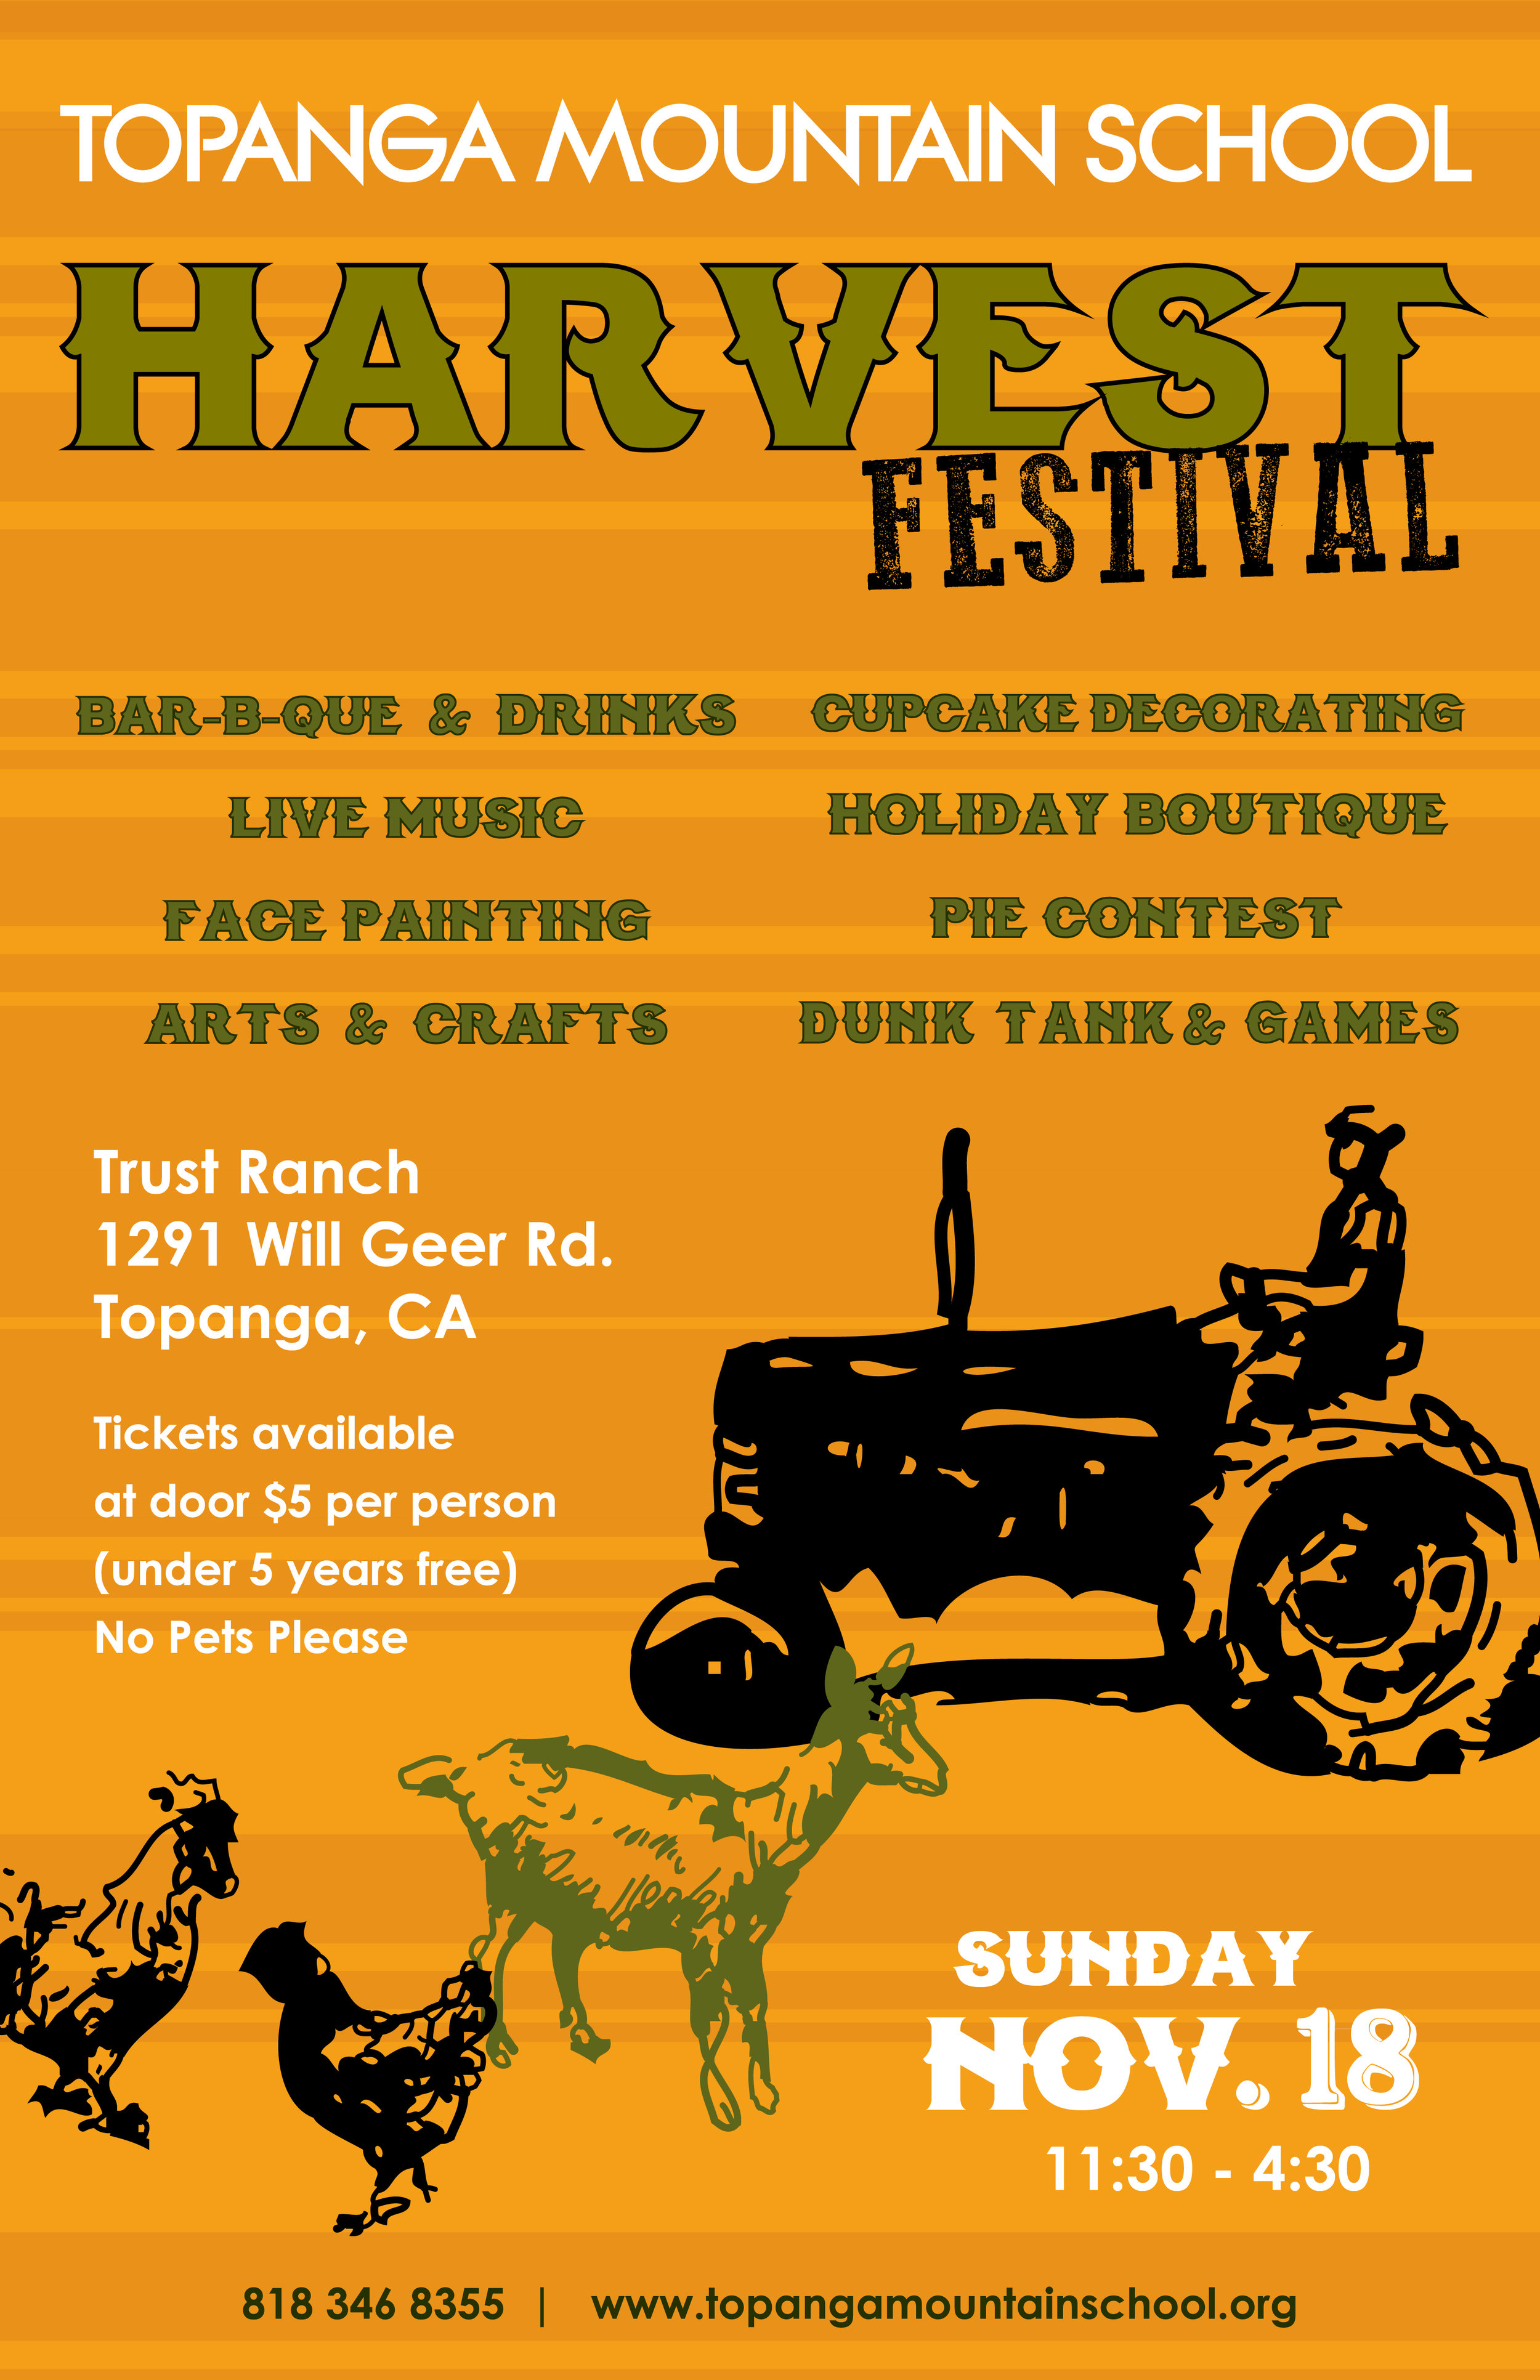 CANCELLED - Due to fires and evacuation orders.Stay safe everyone! We will celebrate in the Spring